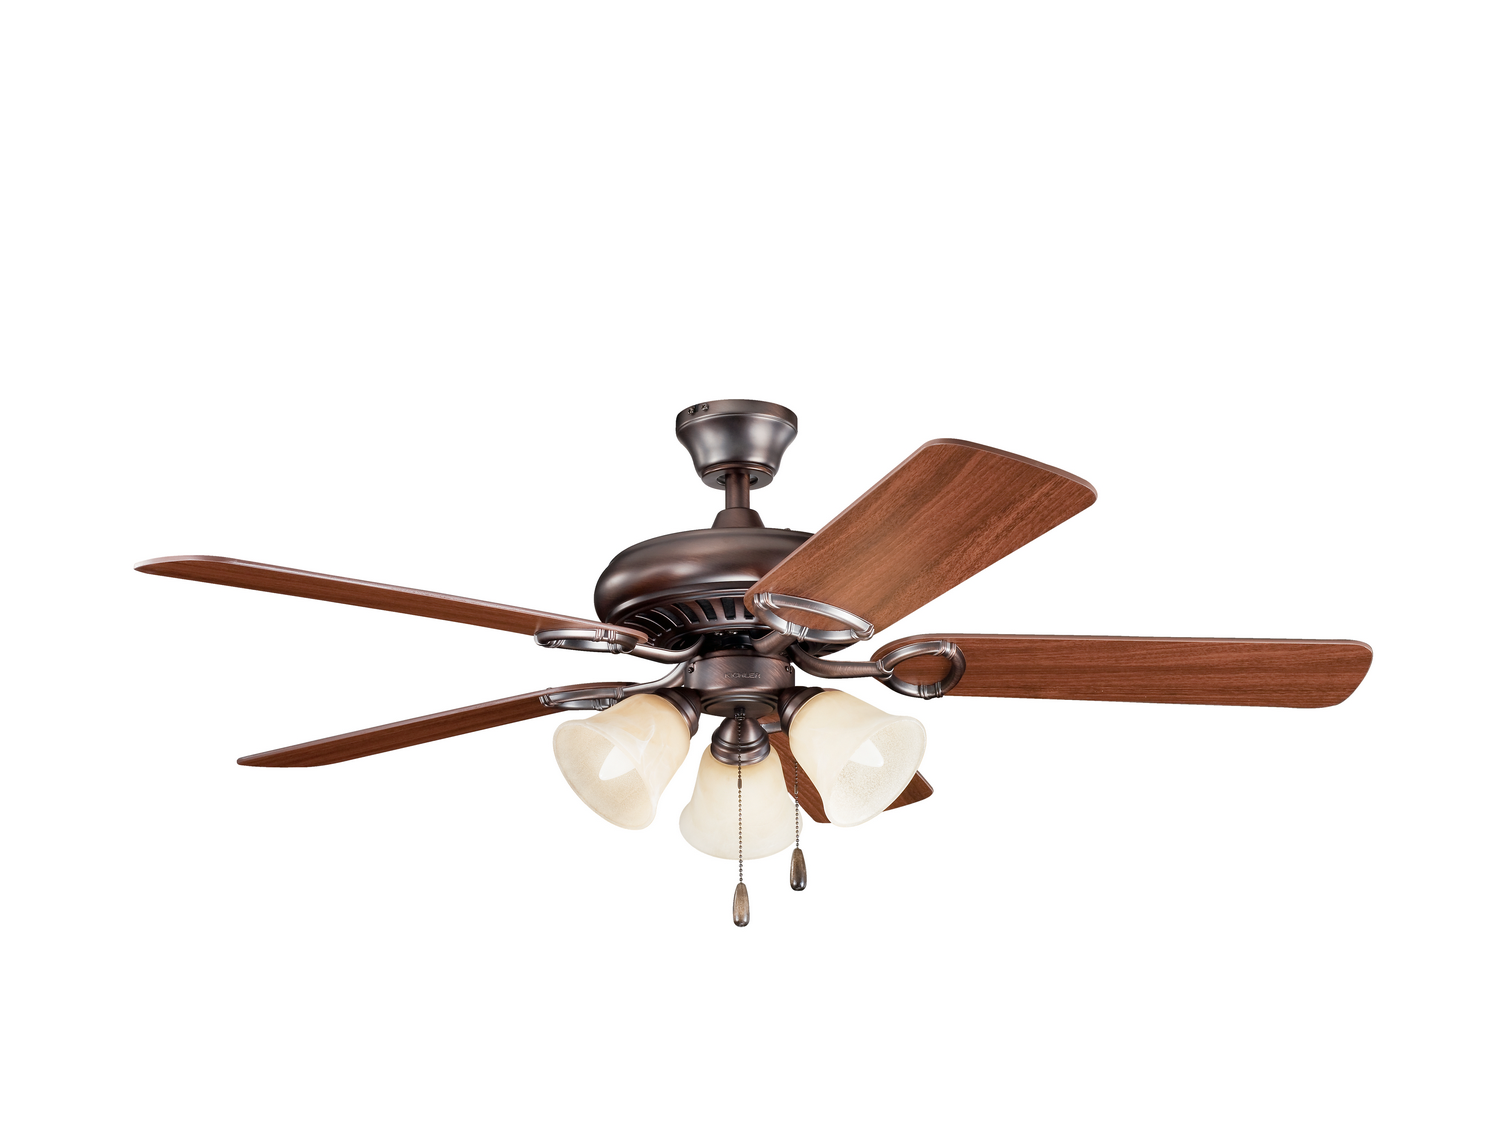 52 inchCeiling Fan from the Sutter Place Premier collection by Kichler 339400OBB